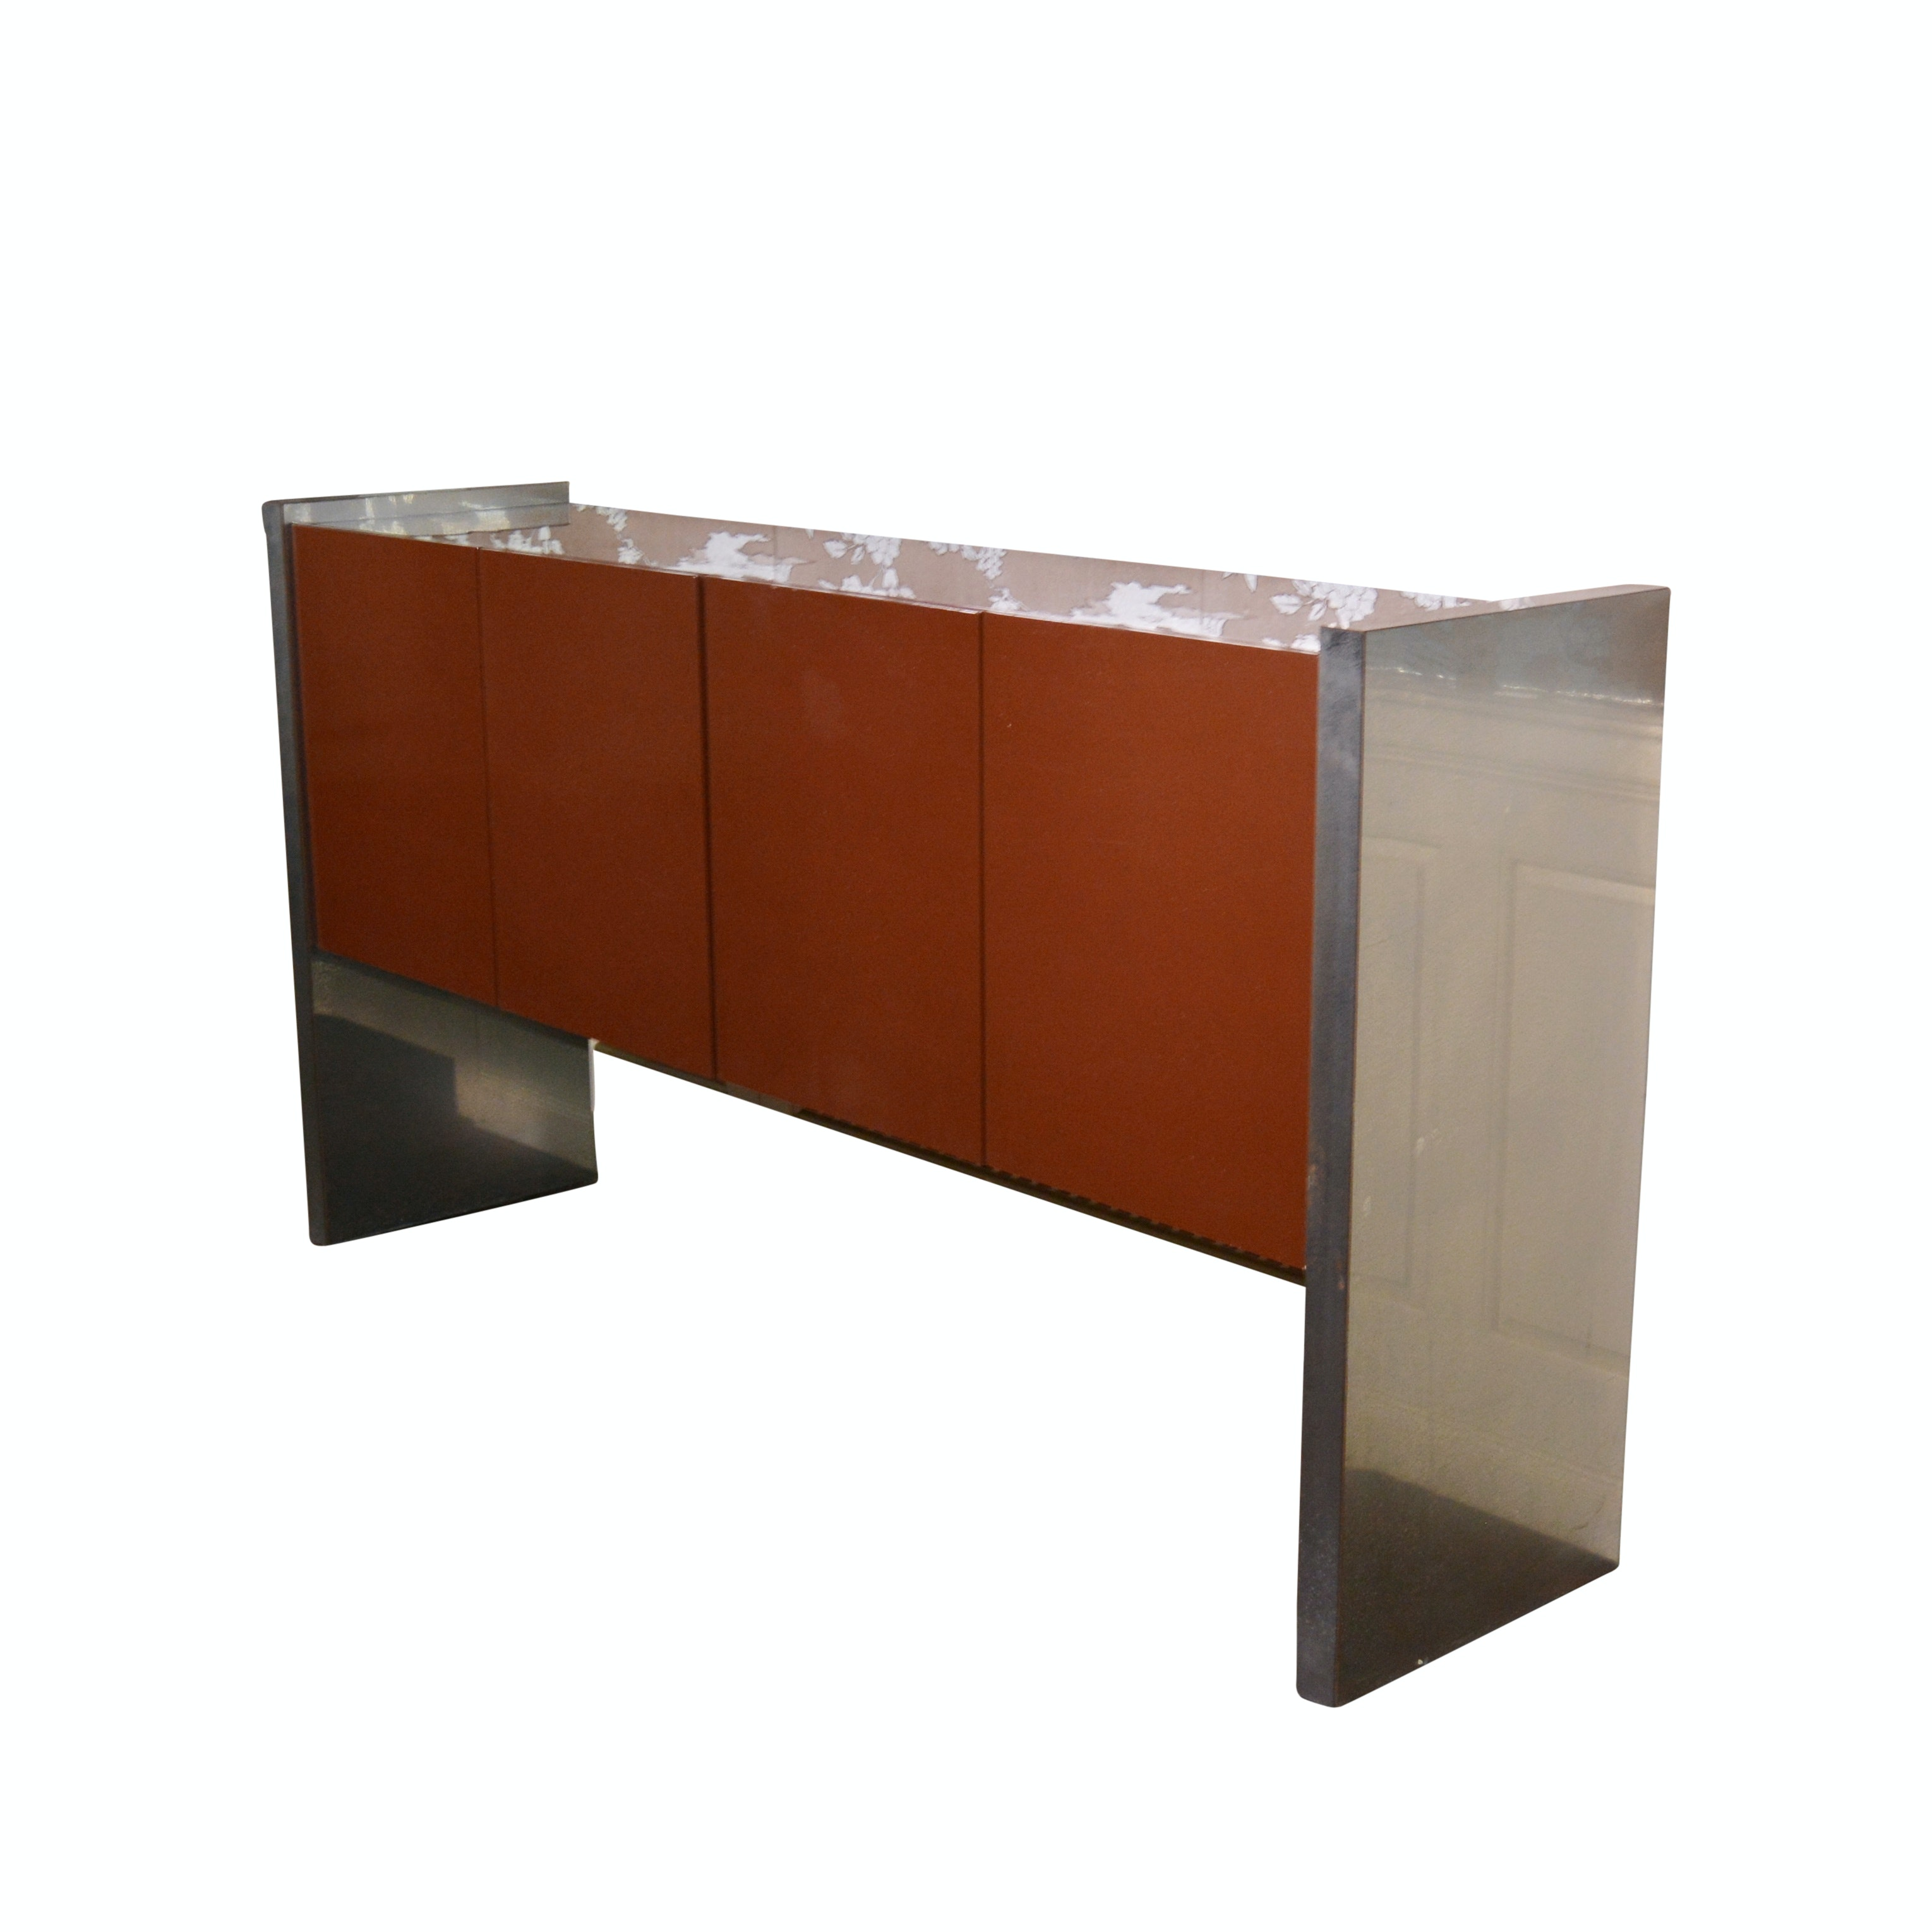 Contemporary Metal and Lacquered Wood Buffet, Mid-20th Century